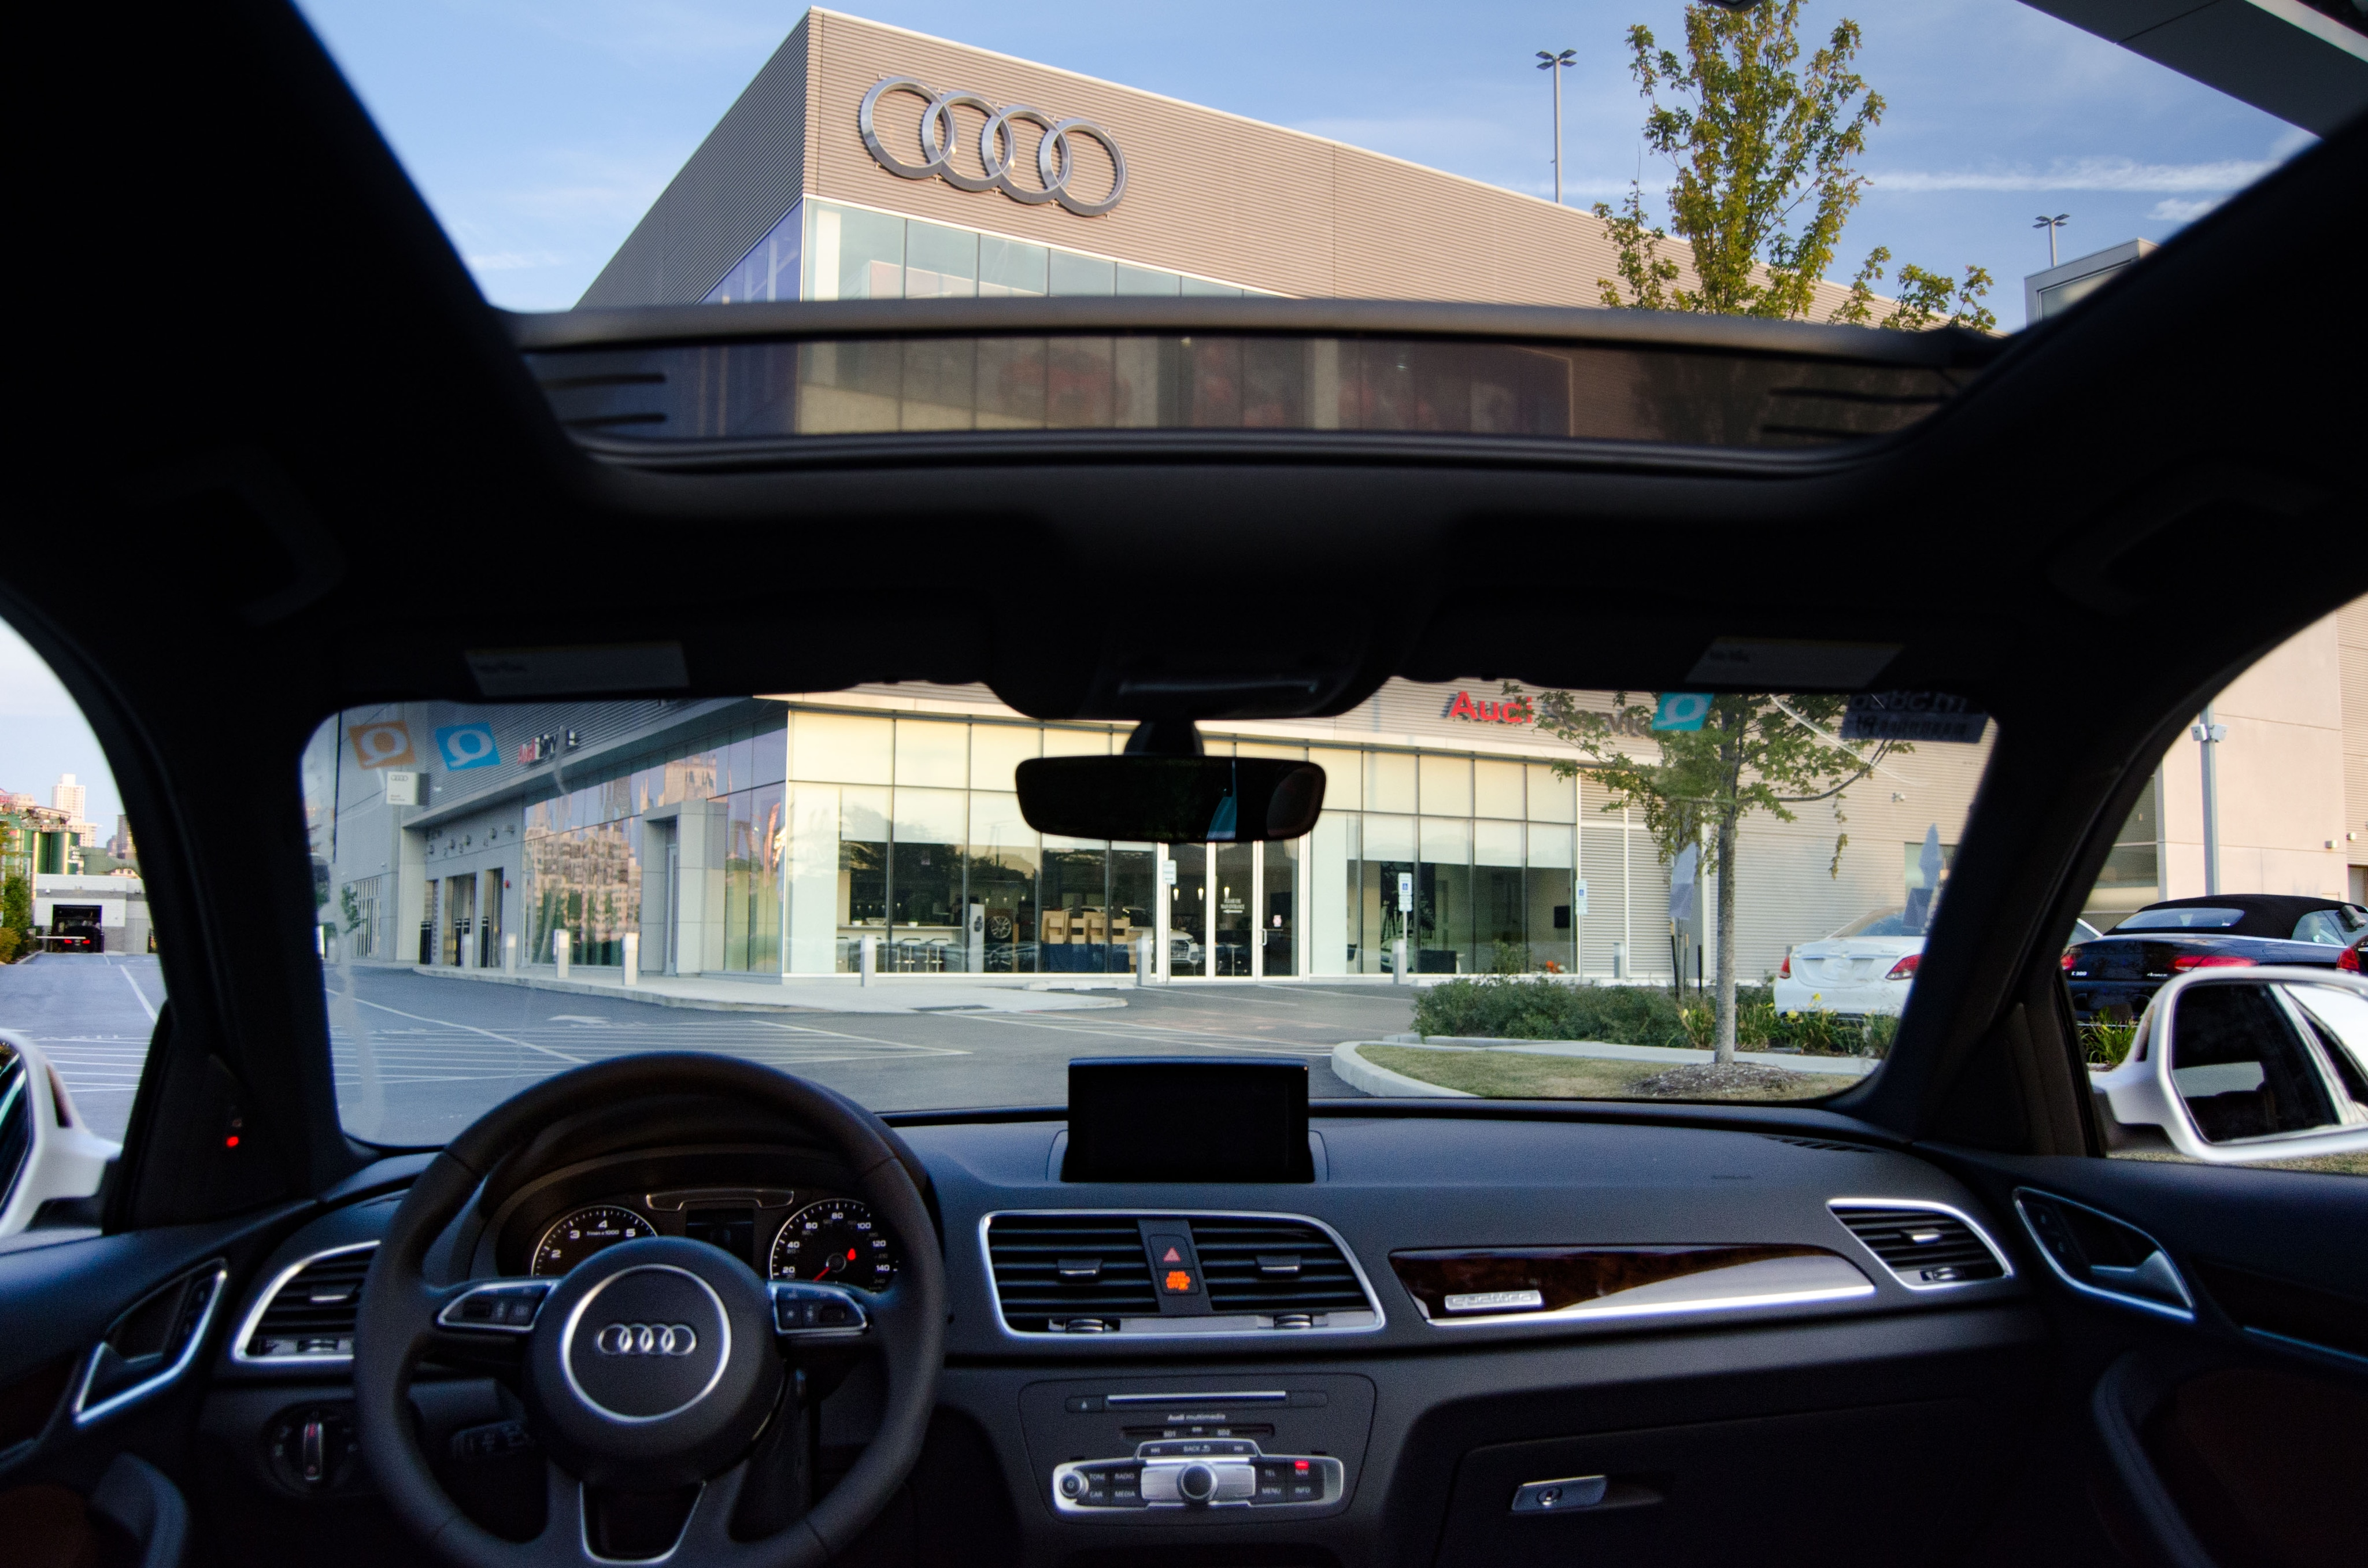 chicago and blog view showroom of stage a jones march the fletcher audi new htm all beautiful sales design against modern skyline dealership sets chic